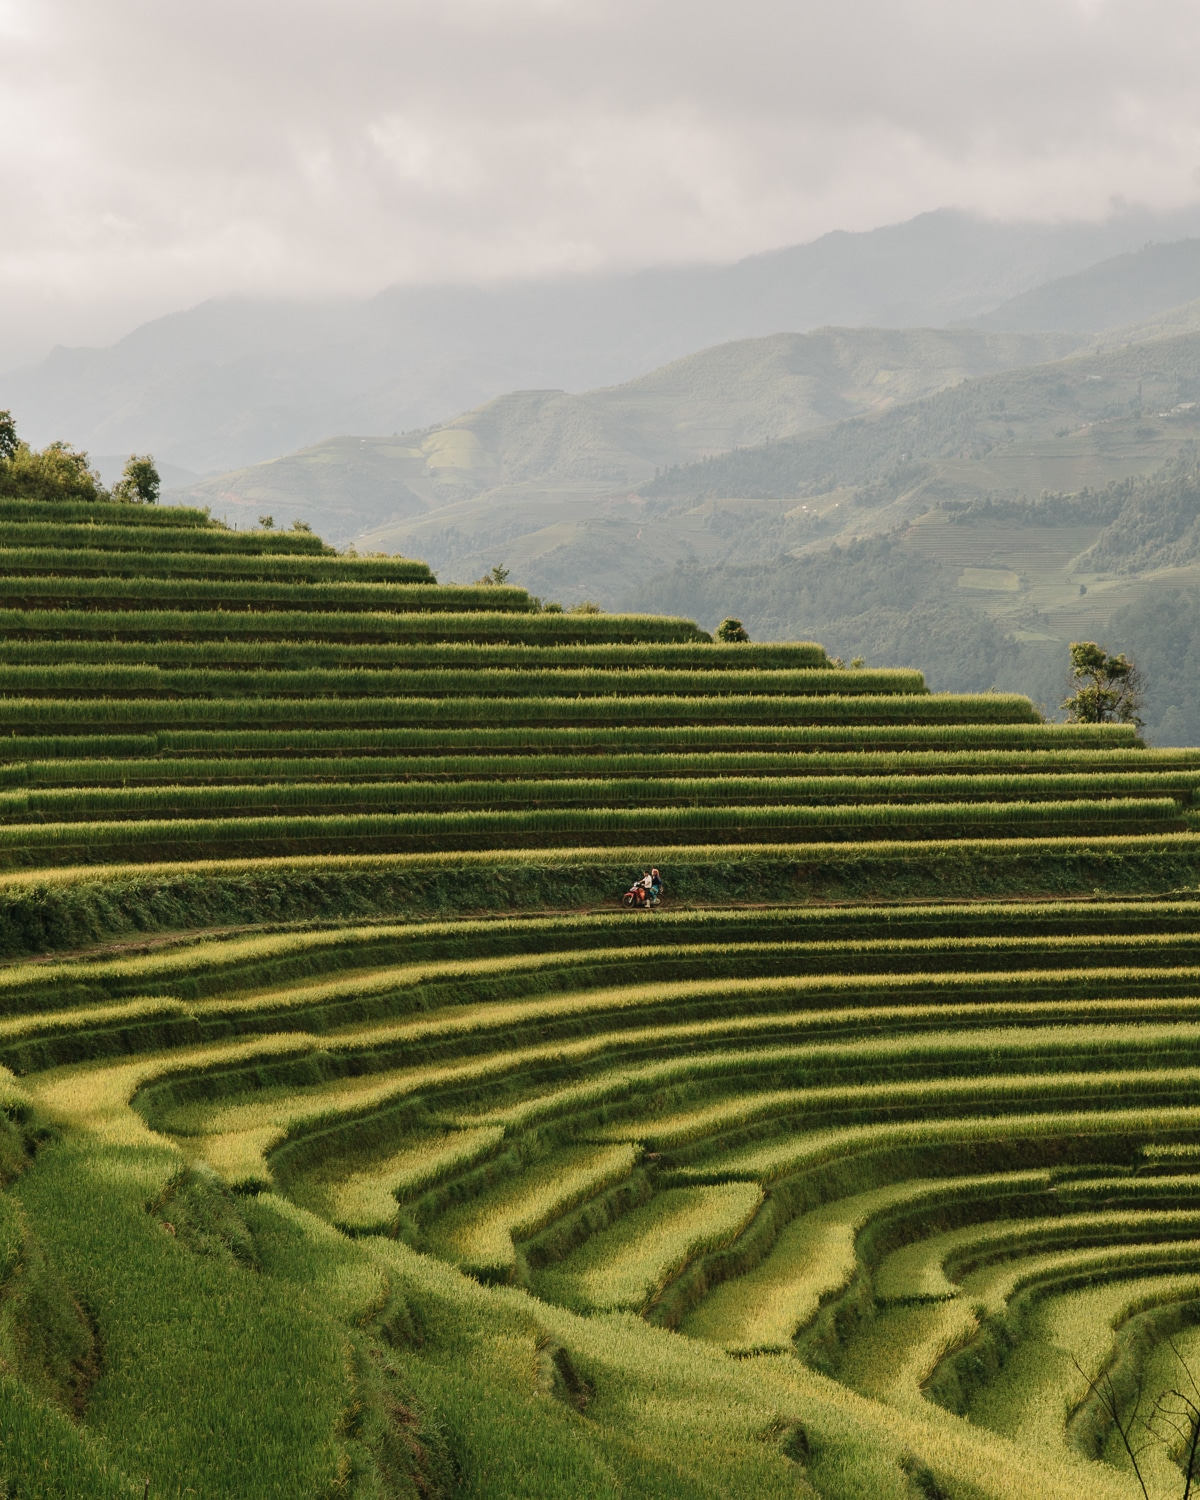 Rice terraces near Mu Cang Chai, Vietnam